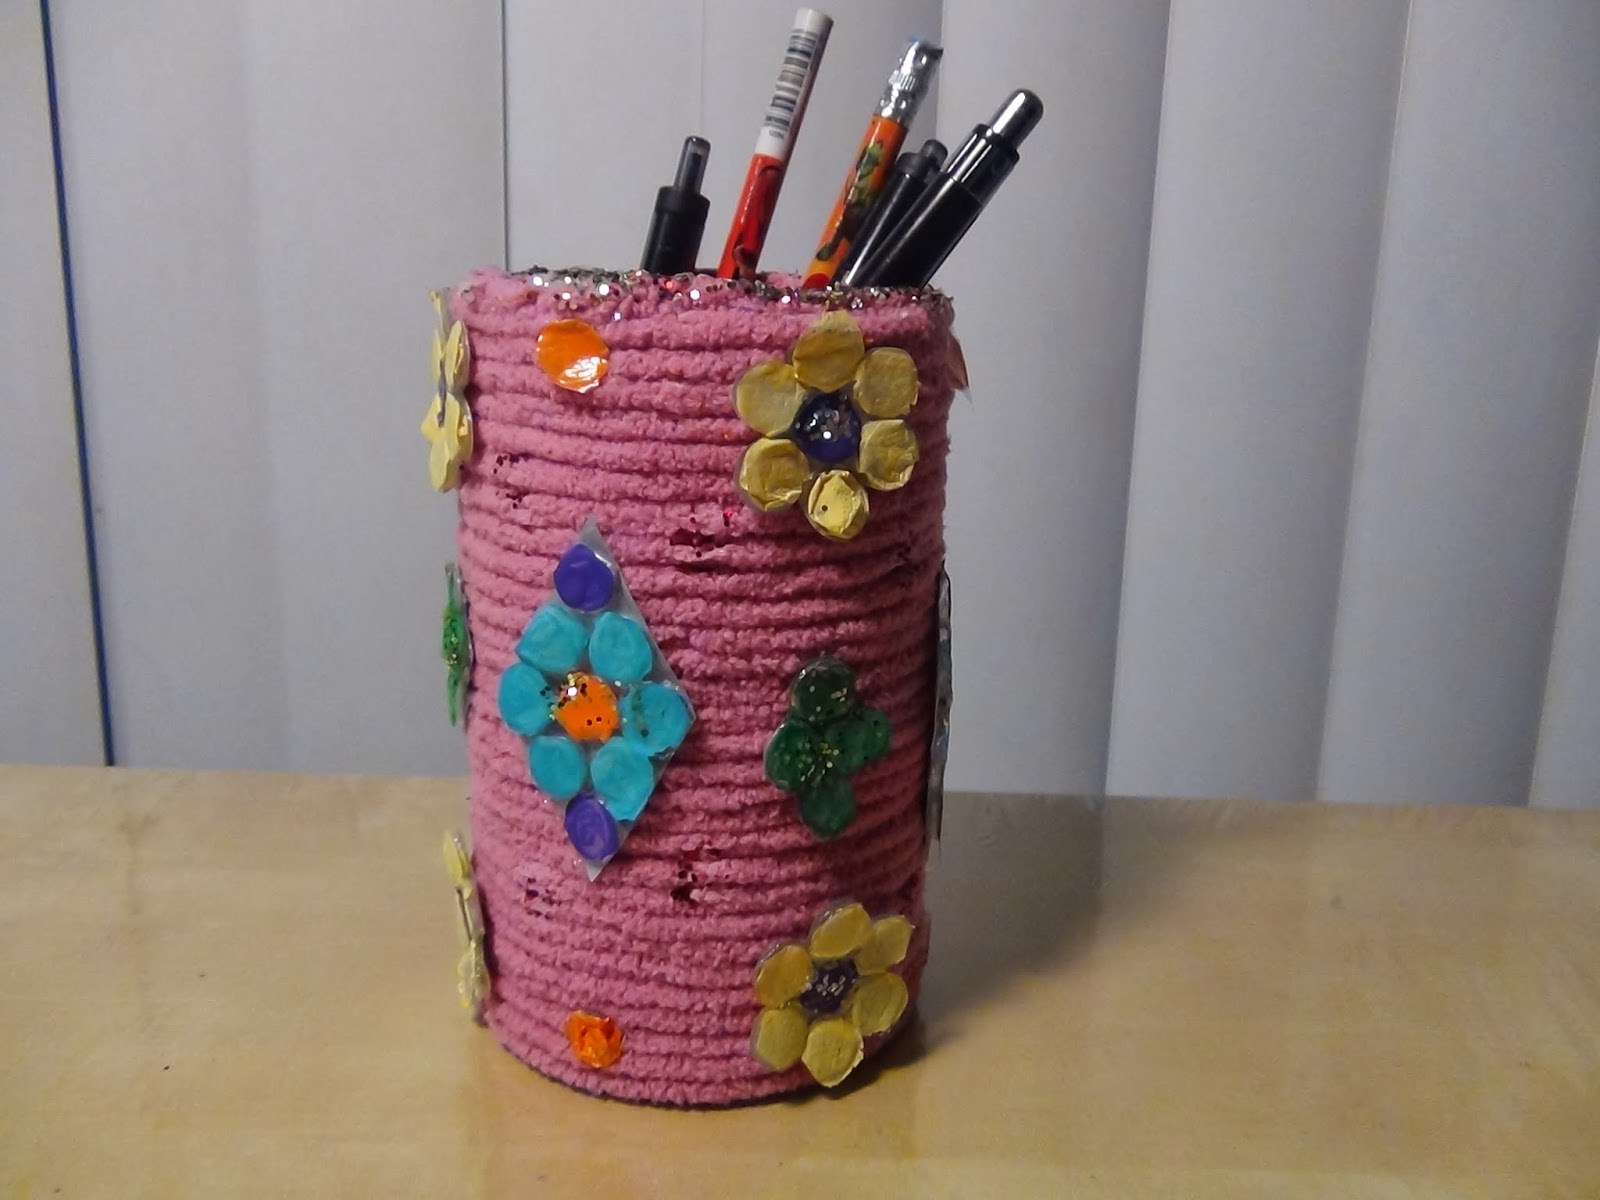 Creative diy crafts diy pen spoon or brush holder with for Making hut with waste material